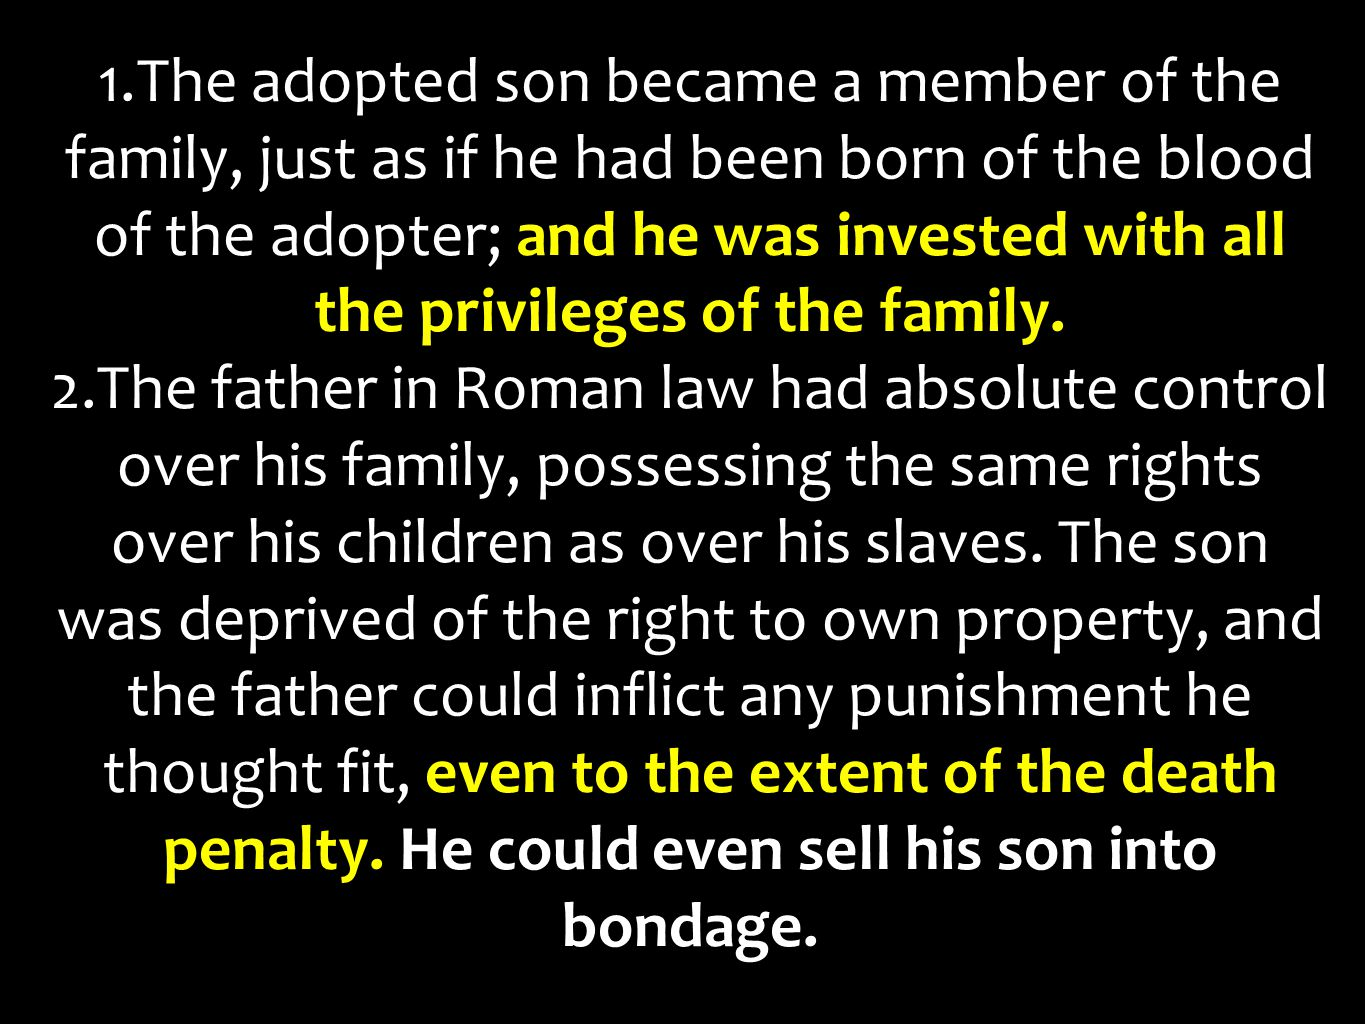 1.The adopted son became a member of the family, just as if he had been born of the blood of the adopter; and he was invested with all the privileges